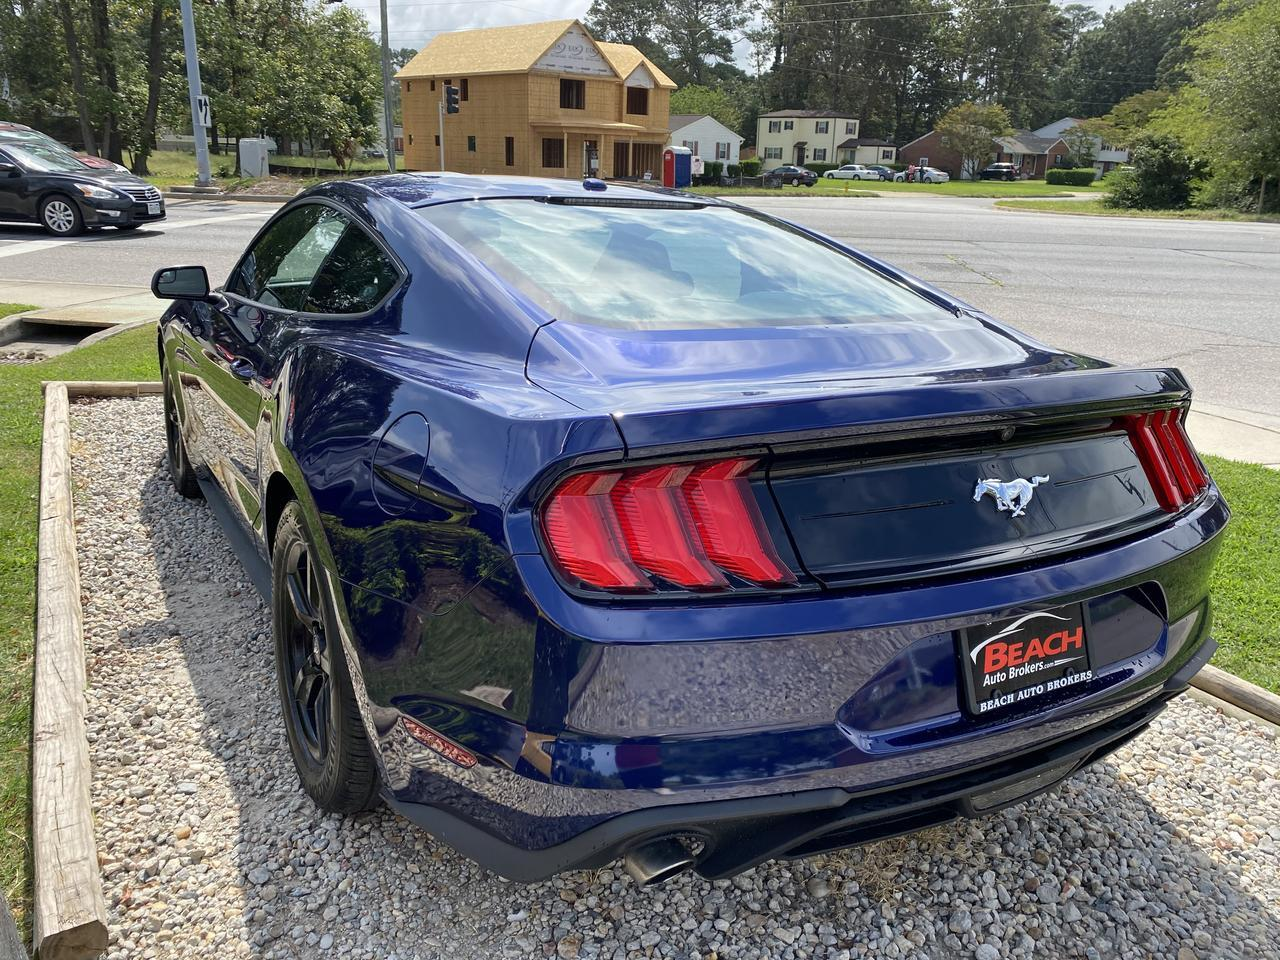 2015 FORD MUSTANG ECOBOOST, WARRANTY, BACKUP CAM, PARKING SENSORS, AUX/USB PORT, 1 OWNER,  CLEAN CARFAX, LOW MILES! Norfolk VA